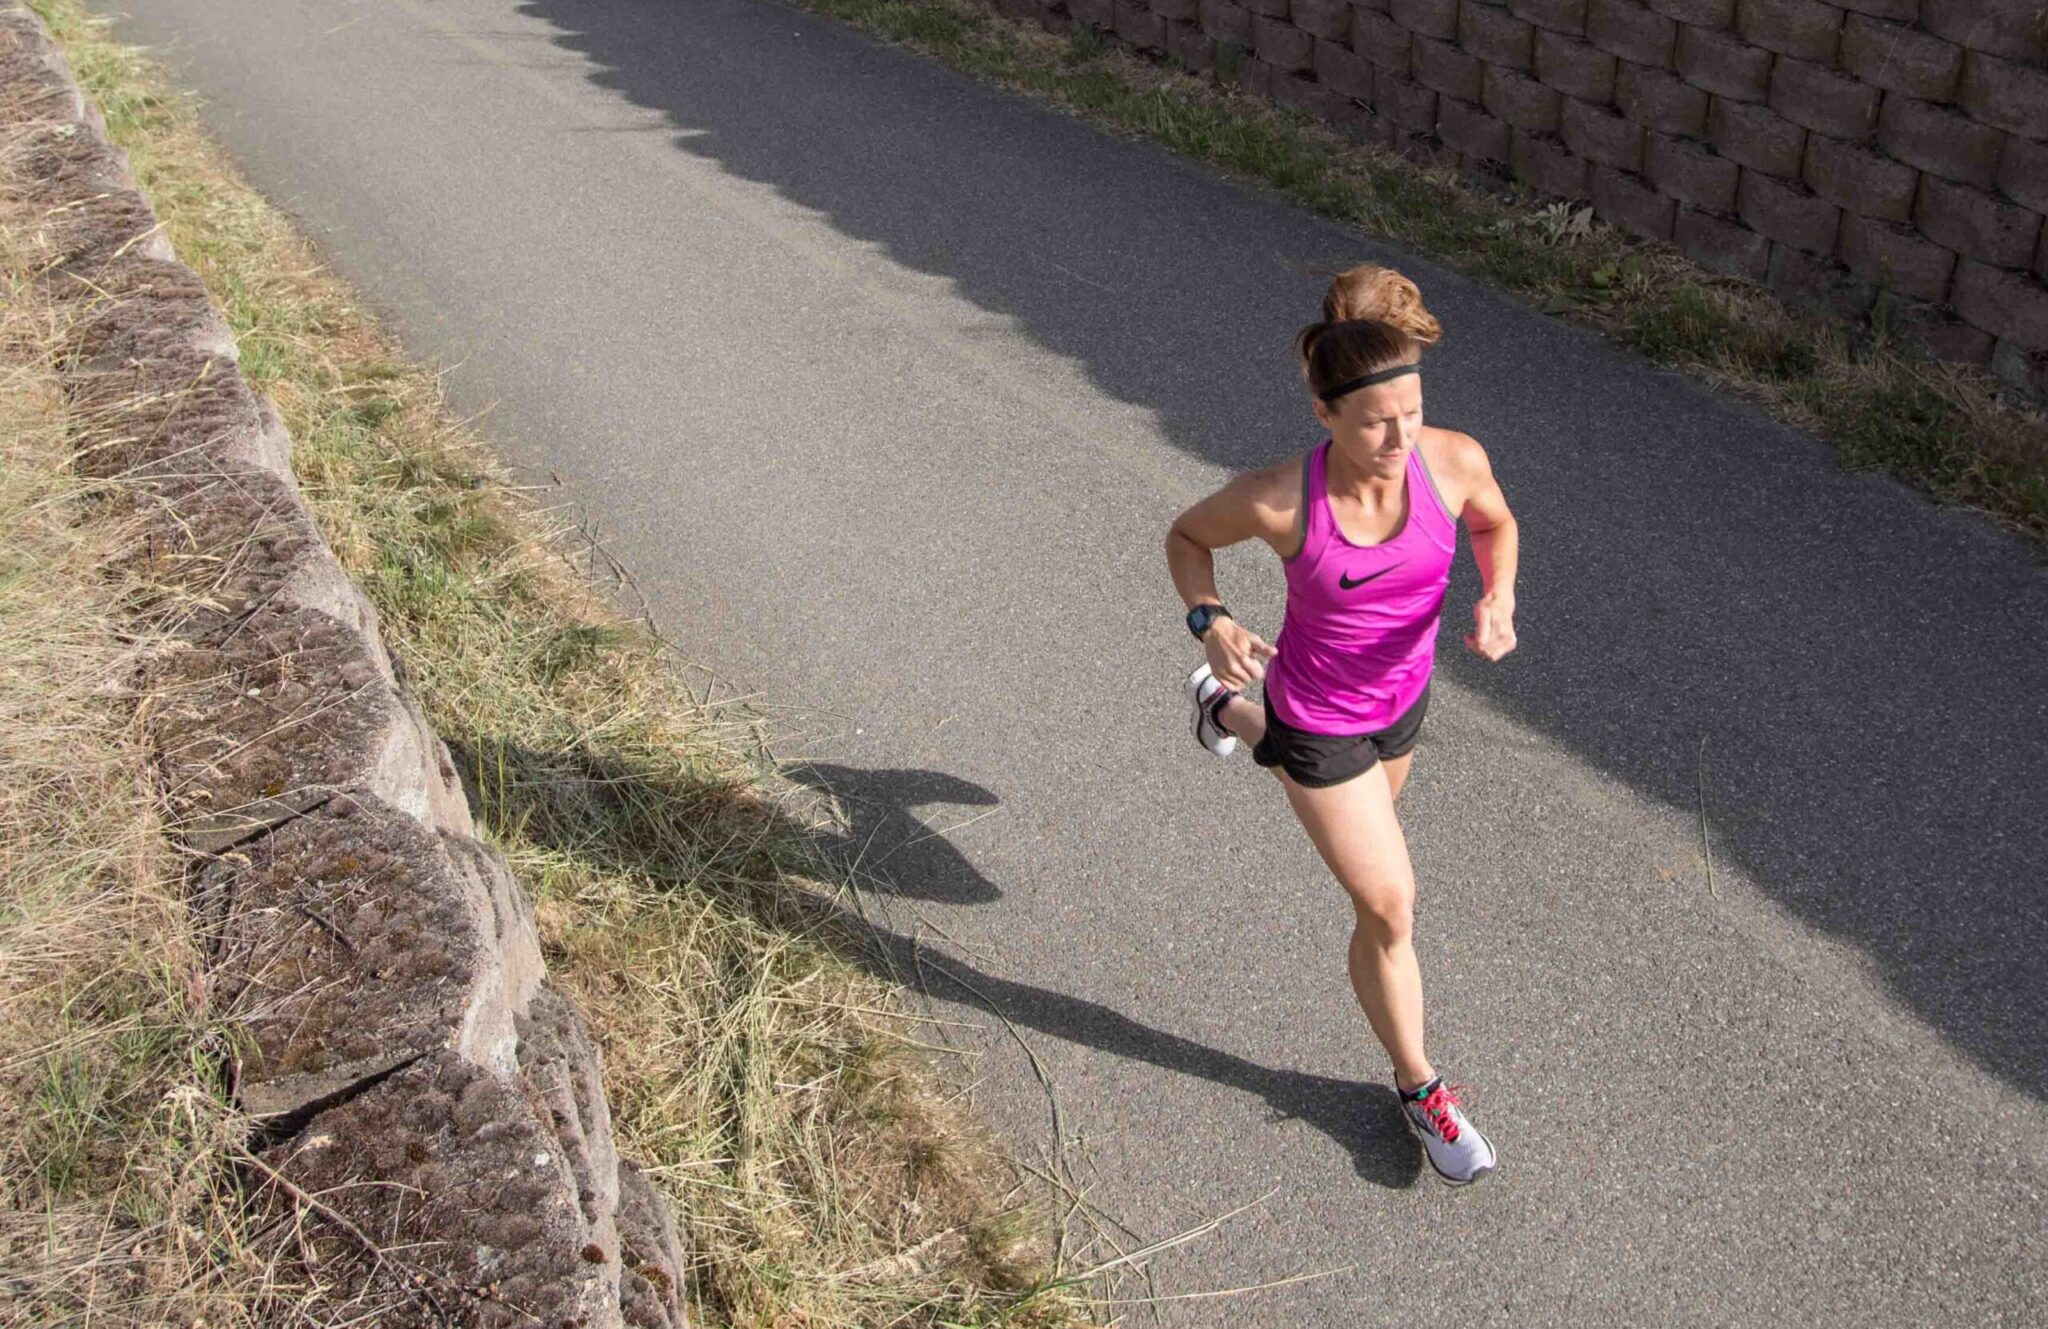 Woman with a purple top running on a paved trail.